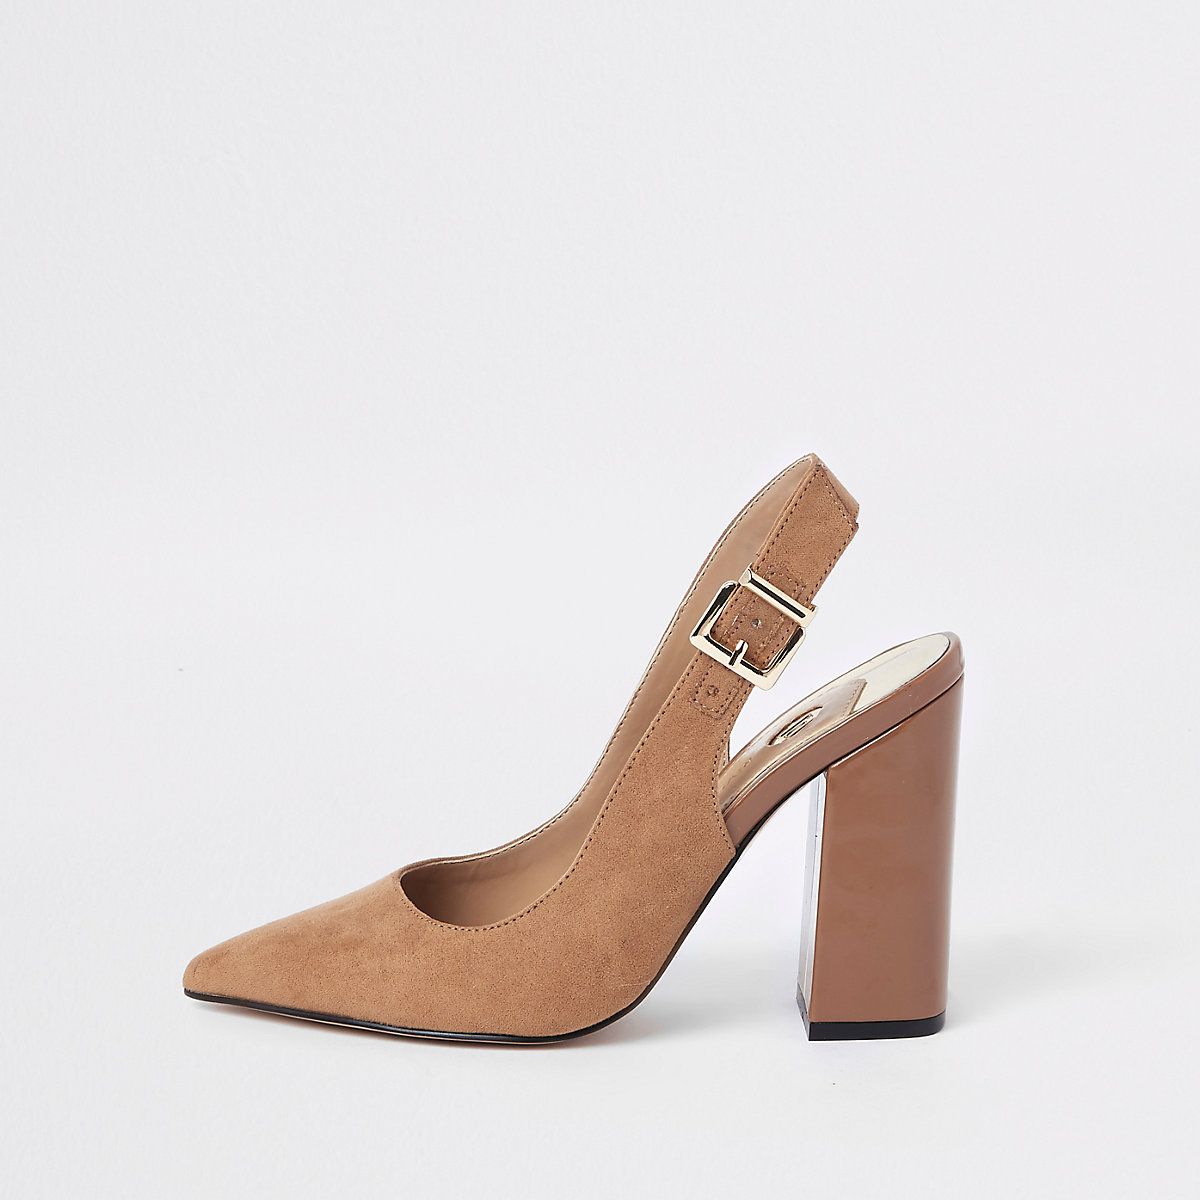 Dark brown block heel slingback pumps